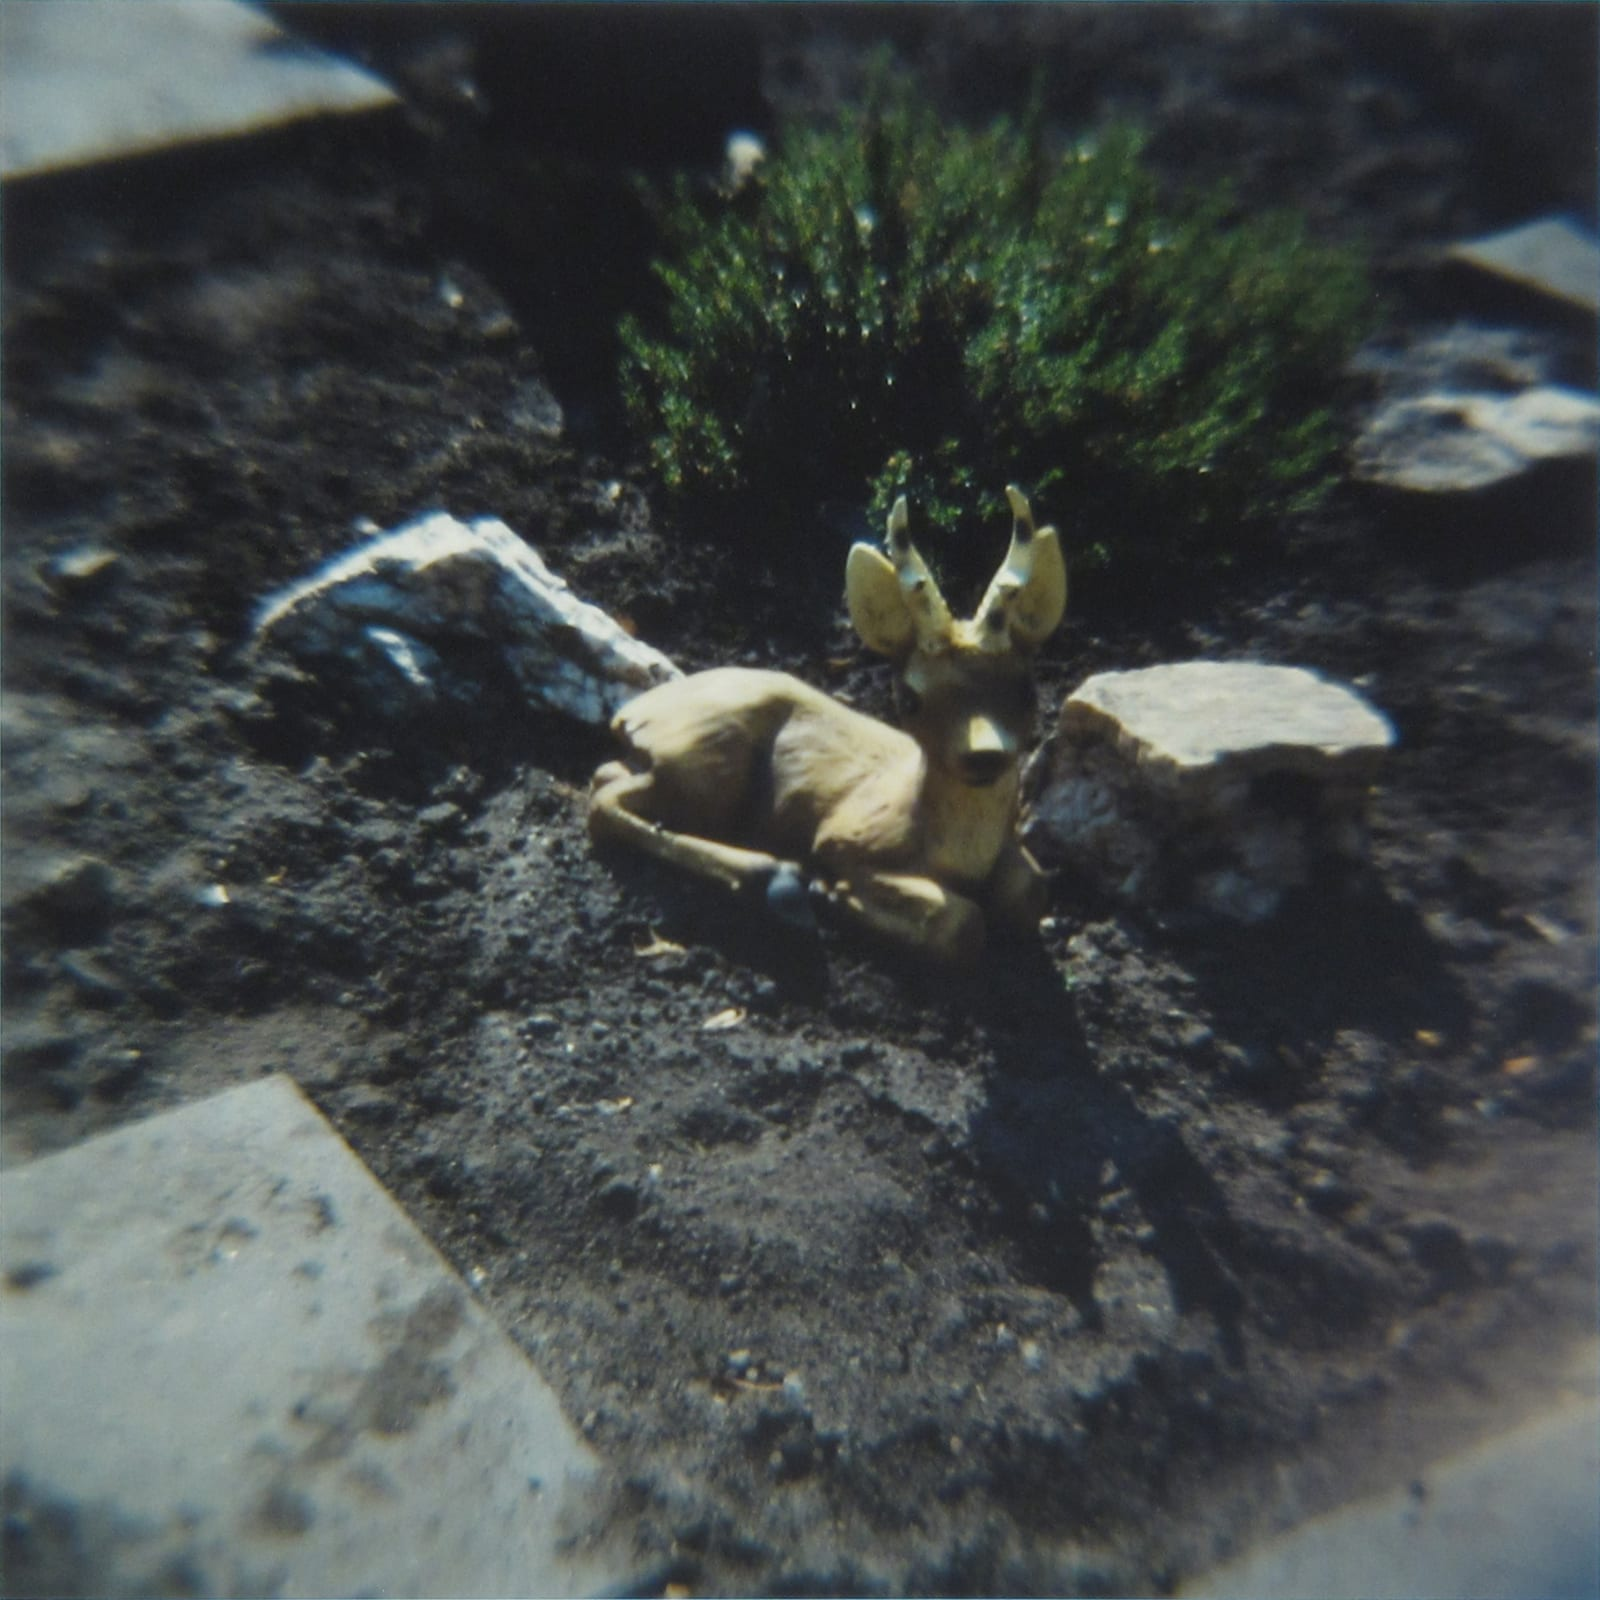 Amy Blakemore Deer in Garden, 2018 chromogenic print 15 x 15 in (38.1 x 38.1 cm) ABL 253 $3,000